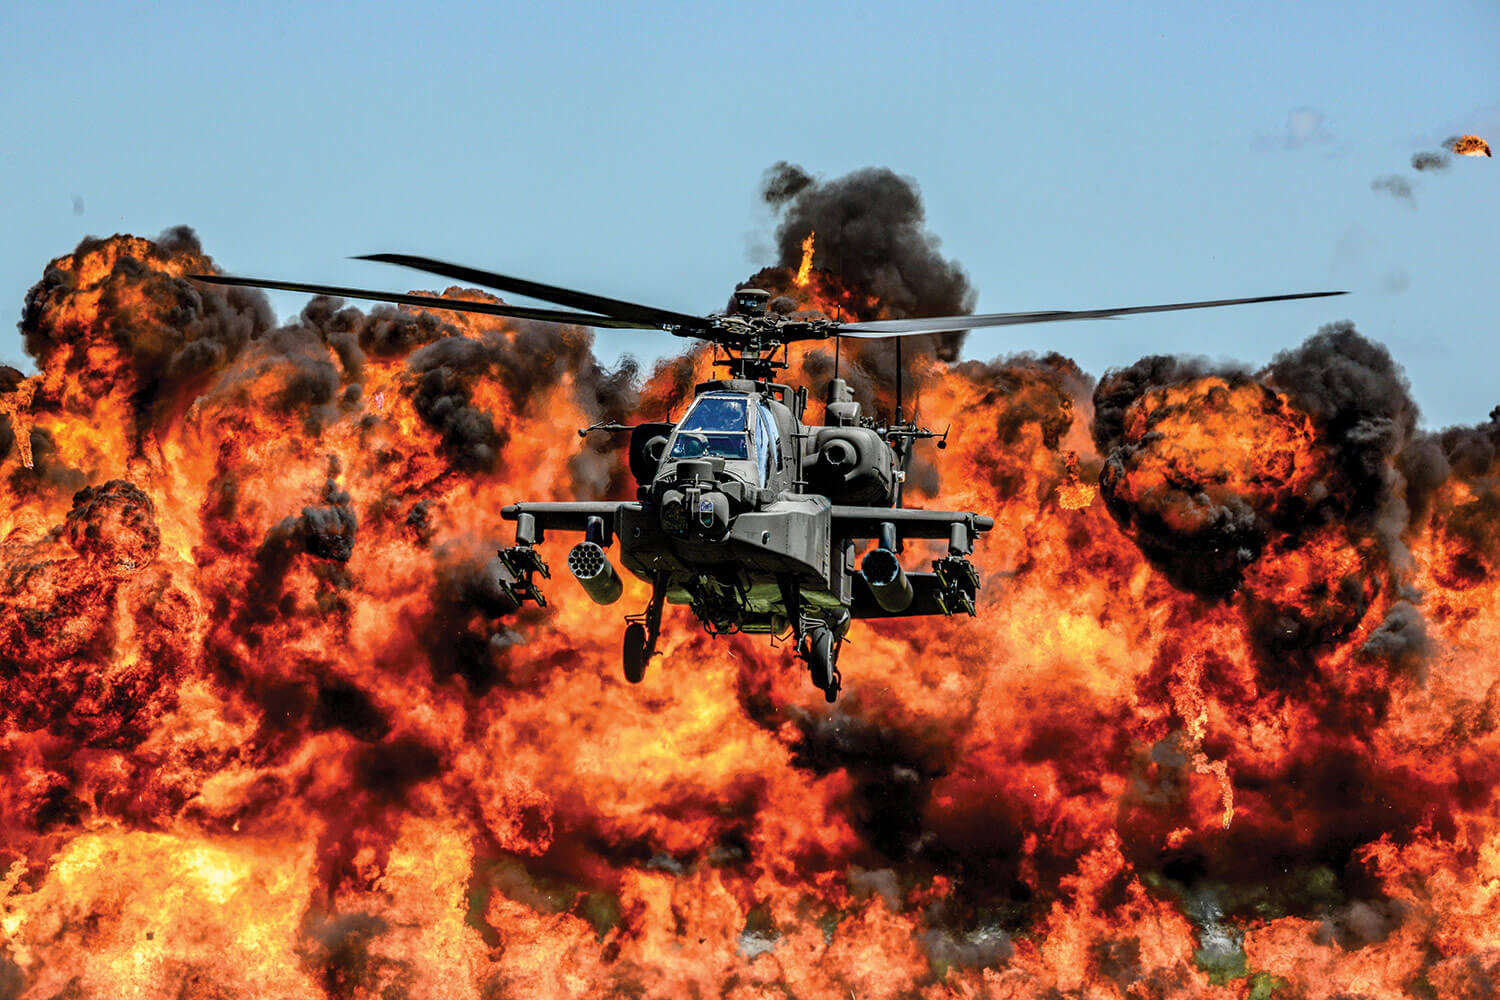 An AH-64D Apache Attack Helicopter, assigned to the 1-151st Attack Reconnaissance Battalion, flies in front of a wall of fire during the South Carolina National Guard Air and Ground Expo at McEntire Joint National Guard Base, S.C., May 6, 2017. The expo is a combined arms demonstration that showcases the abilities of South Carolina National Guard members. It also offers opportunities for the South Carolina Guard to express its thanks for the support shown by fellow South Carolinians in the surrounding community. South Carolina National Guard photo by Tech Sgt Jorge Intriago.